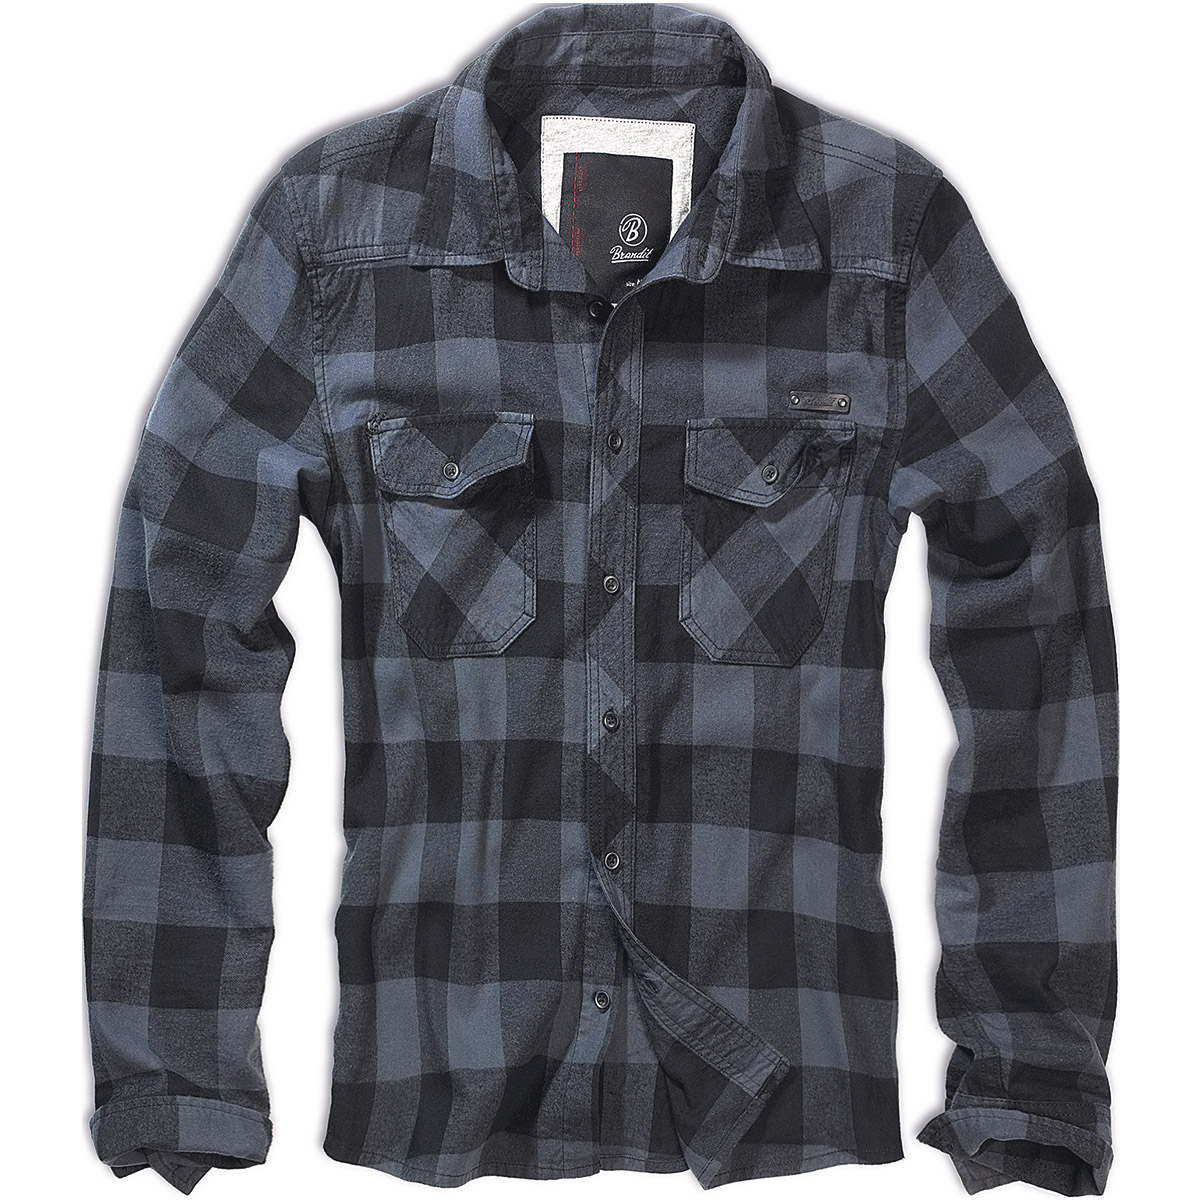 Sentinel Brandit Classic Cotton Check Flannel Top Mens Long Sleeve Work Shirt  Black Grey 065ba5e944e